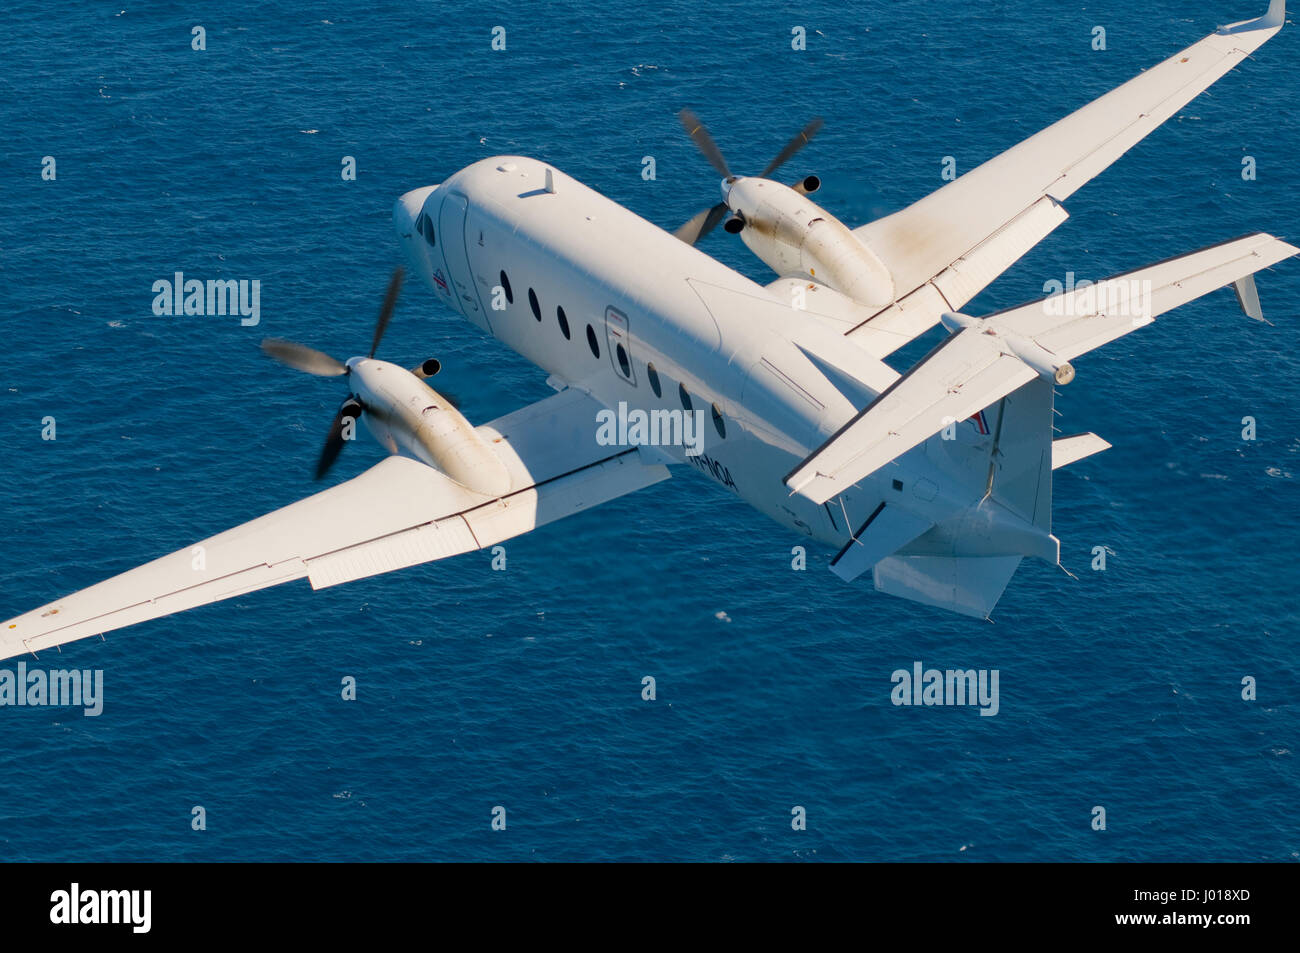 An aerial view of a Beechcraft B1900D short-haul / charter airliner. - Stock Image